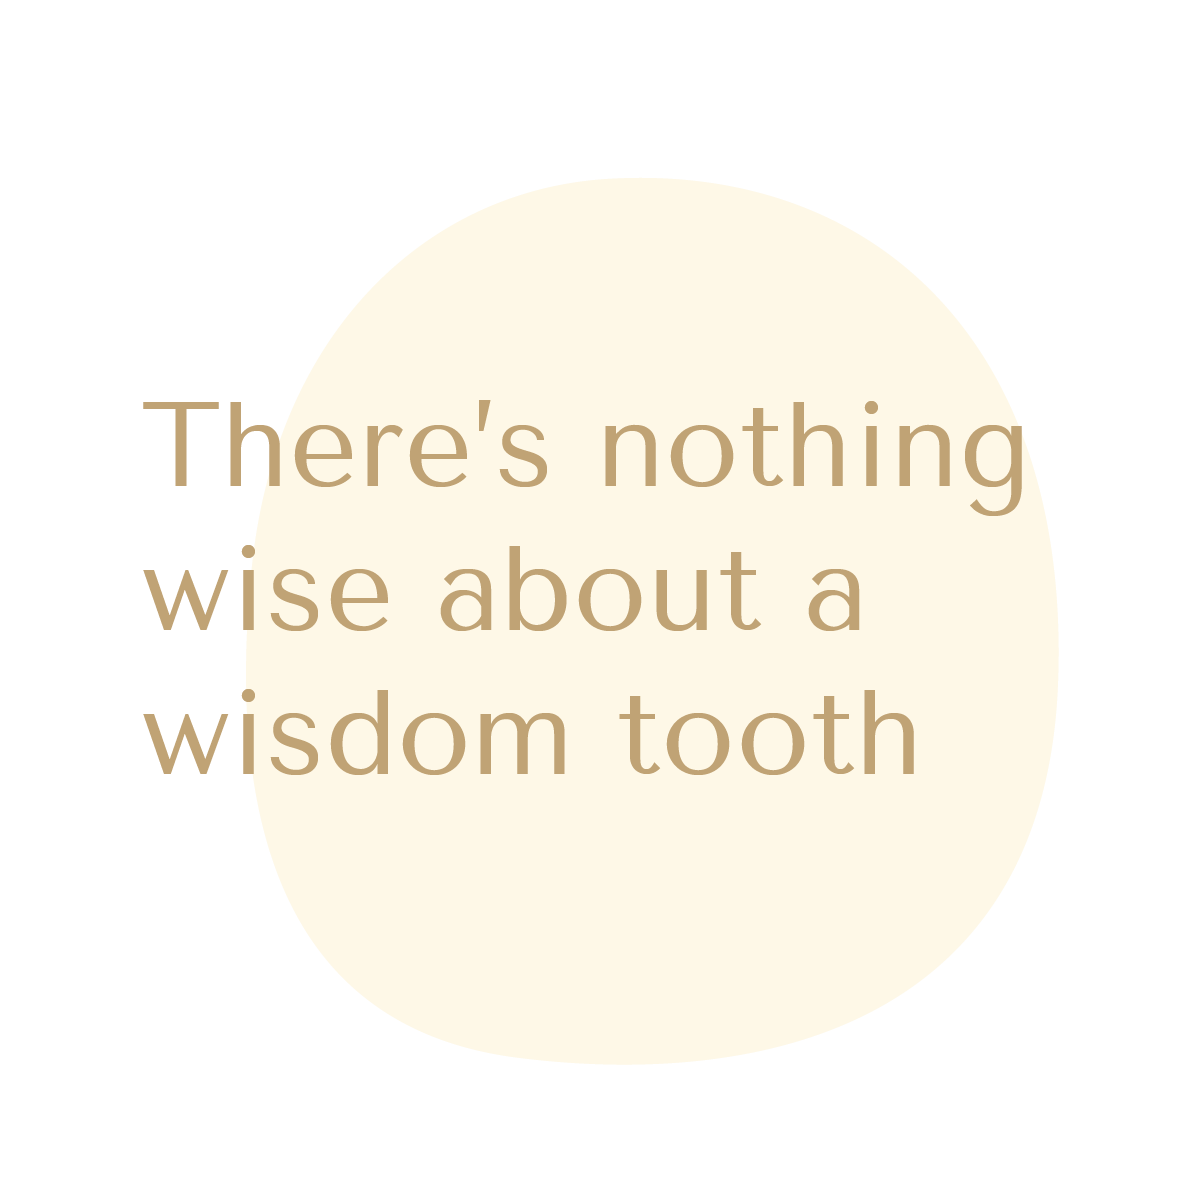 surry hills dental surgery quote